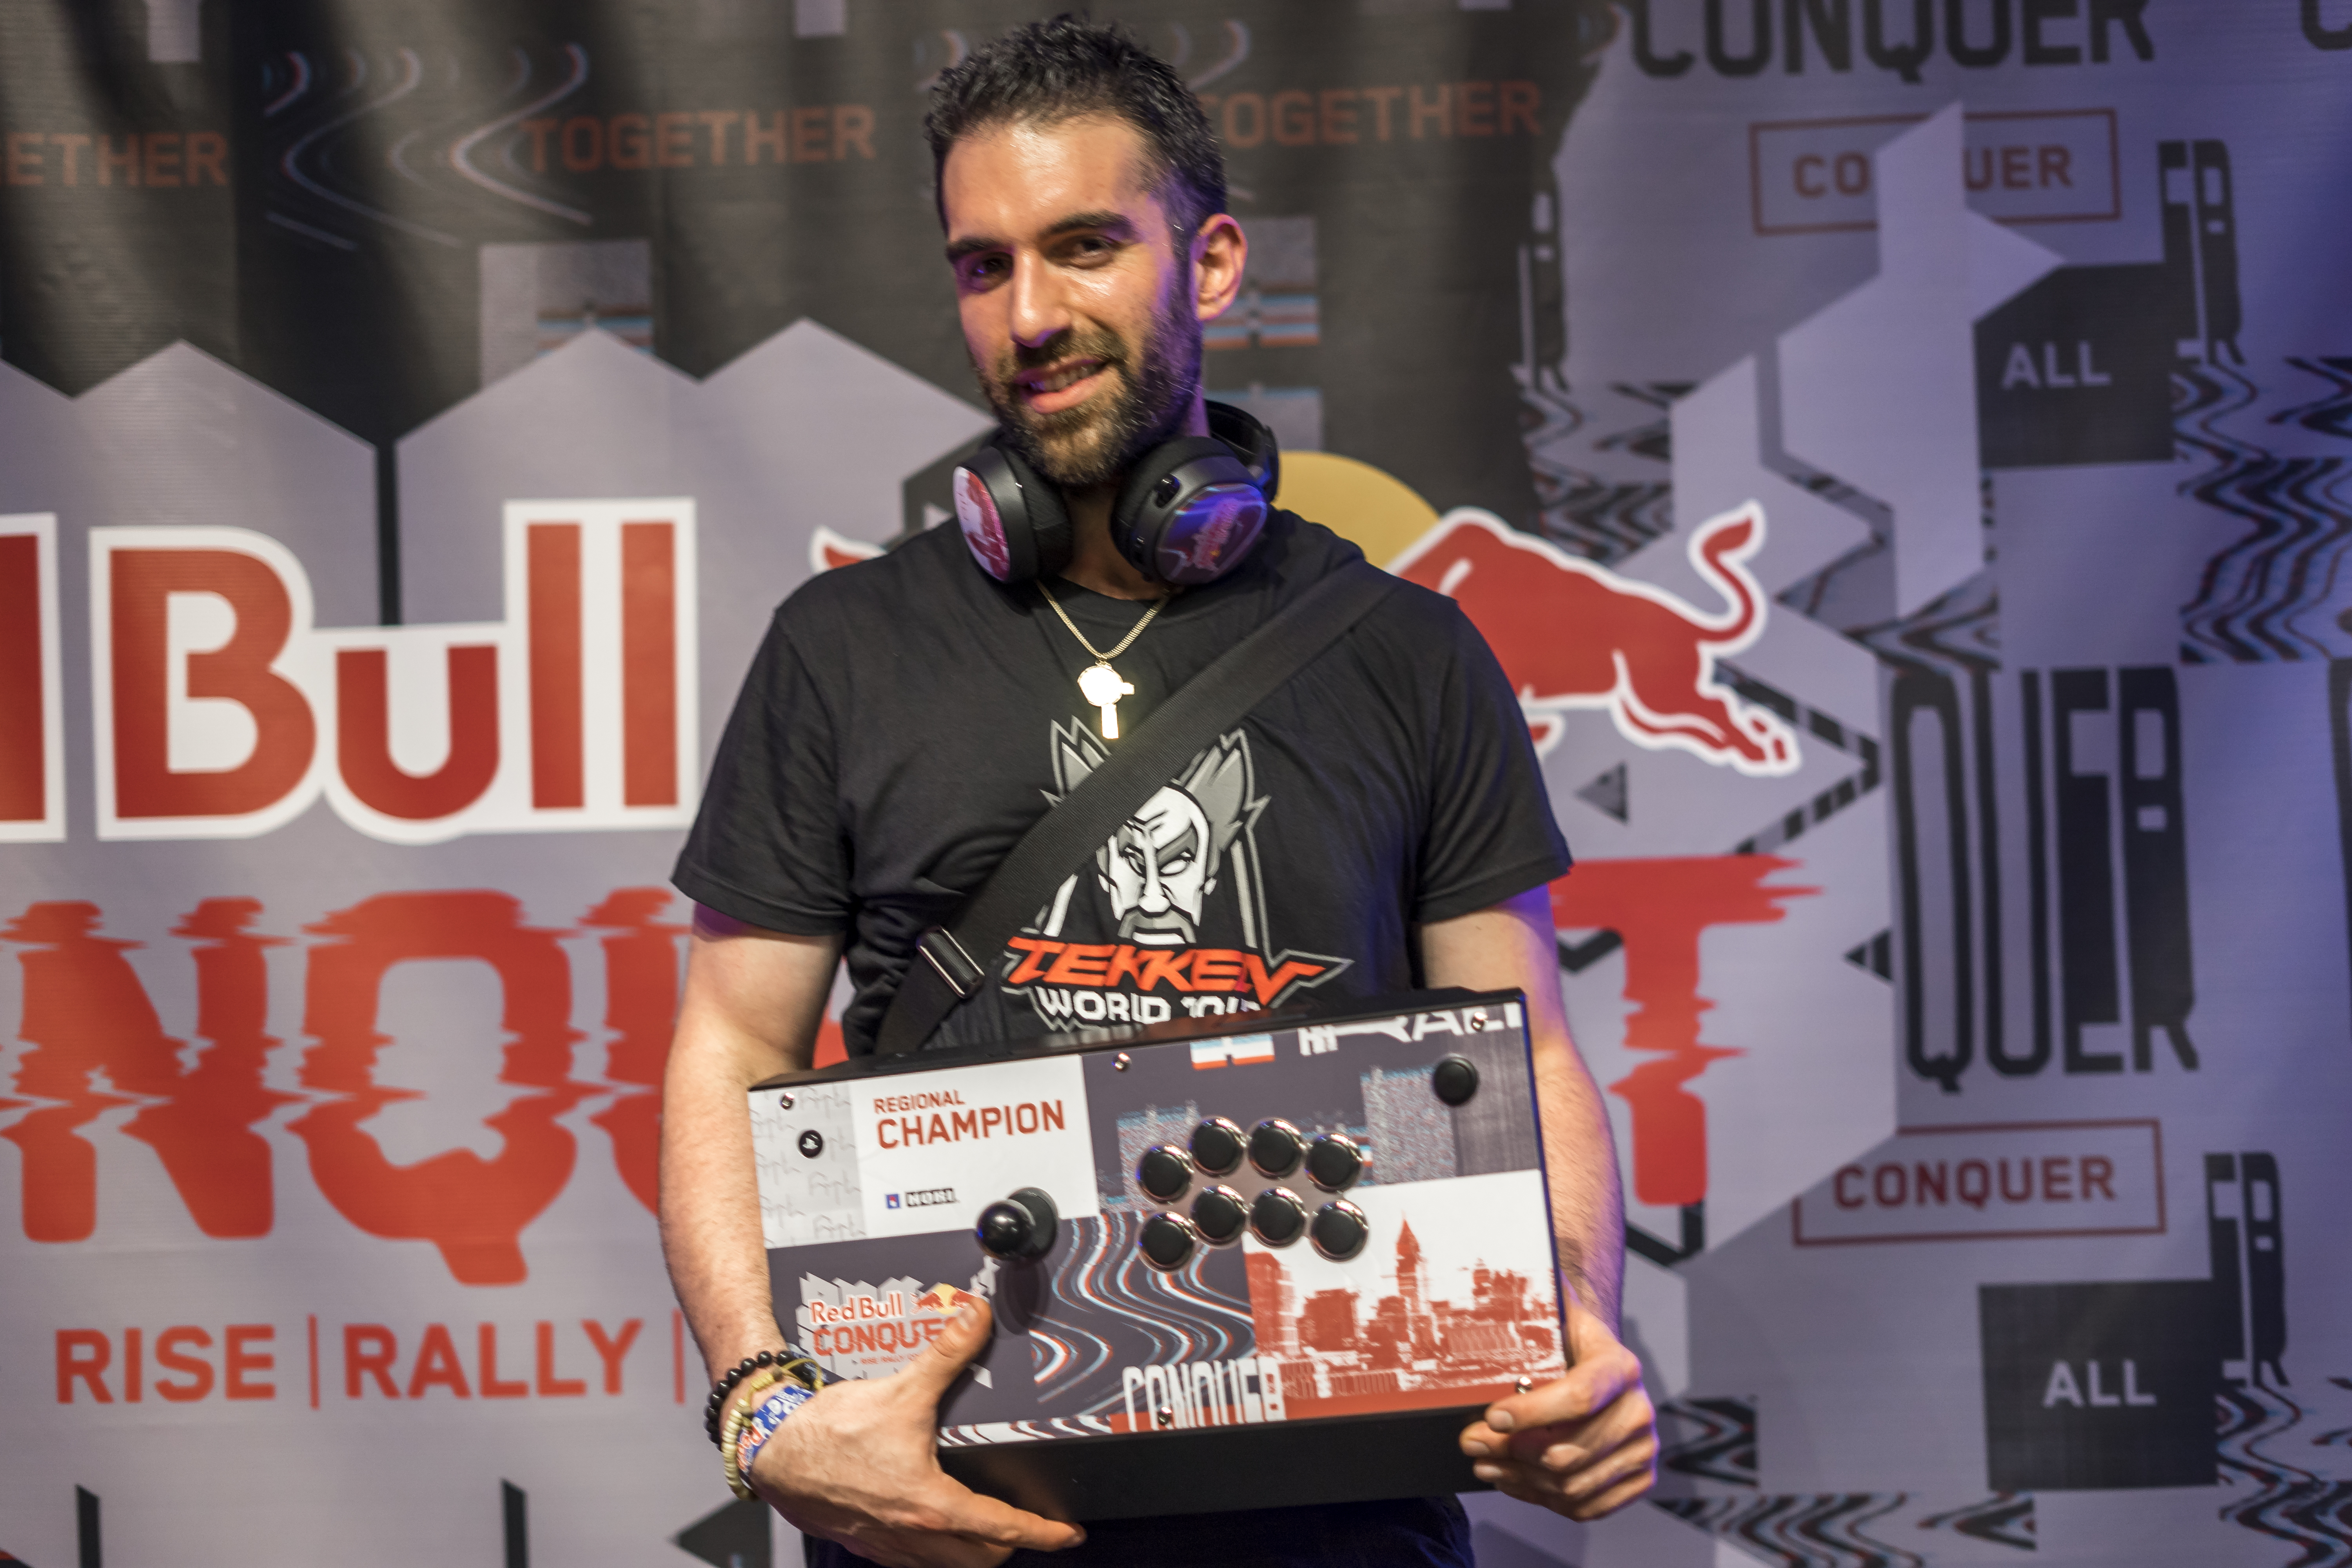 The winner of Tekken poses for a portrait at the Red Bull Conquest Qualifier held at The Garage at Tech Square in Atlanta on Sept. 8, 2018. (Photo courtesy of Red Bull)